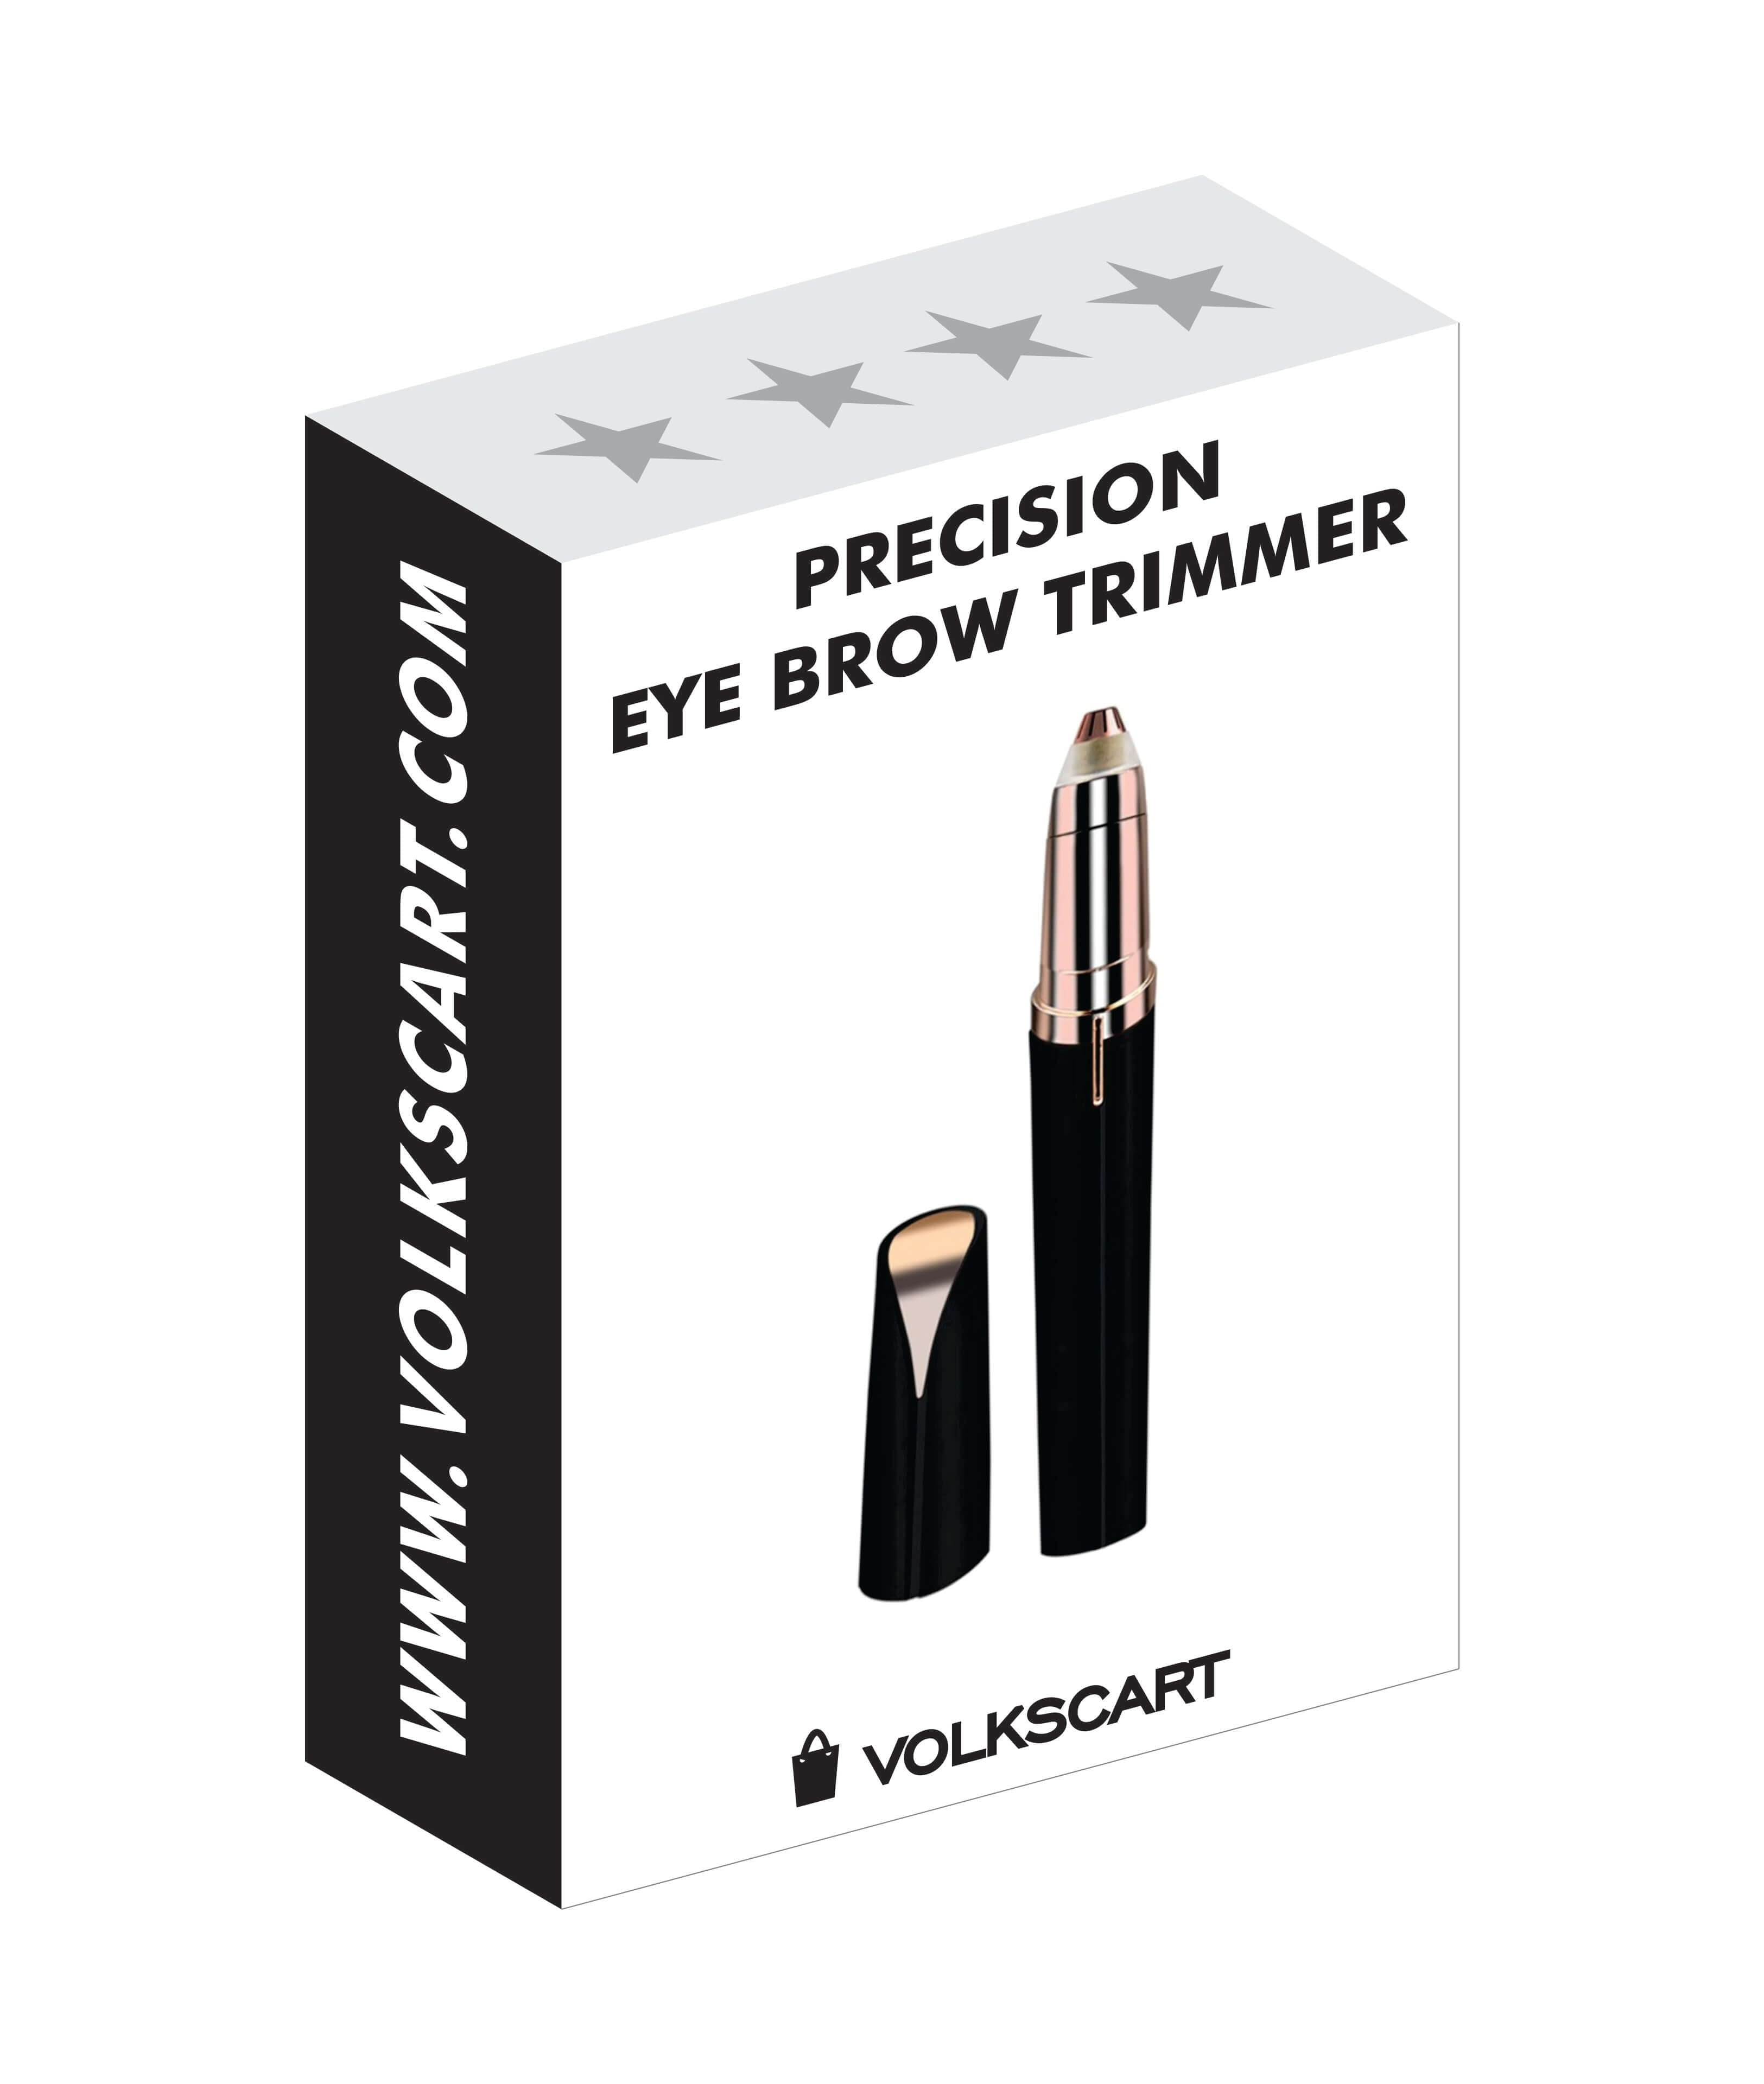 Precision Eyebrow Trimmer